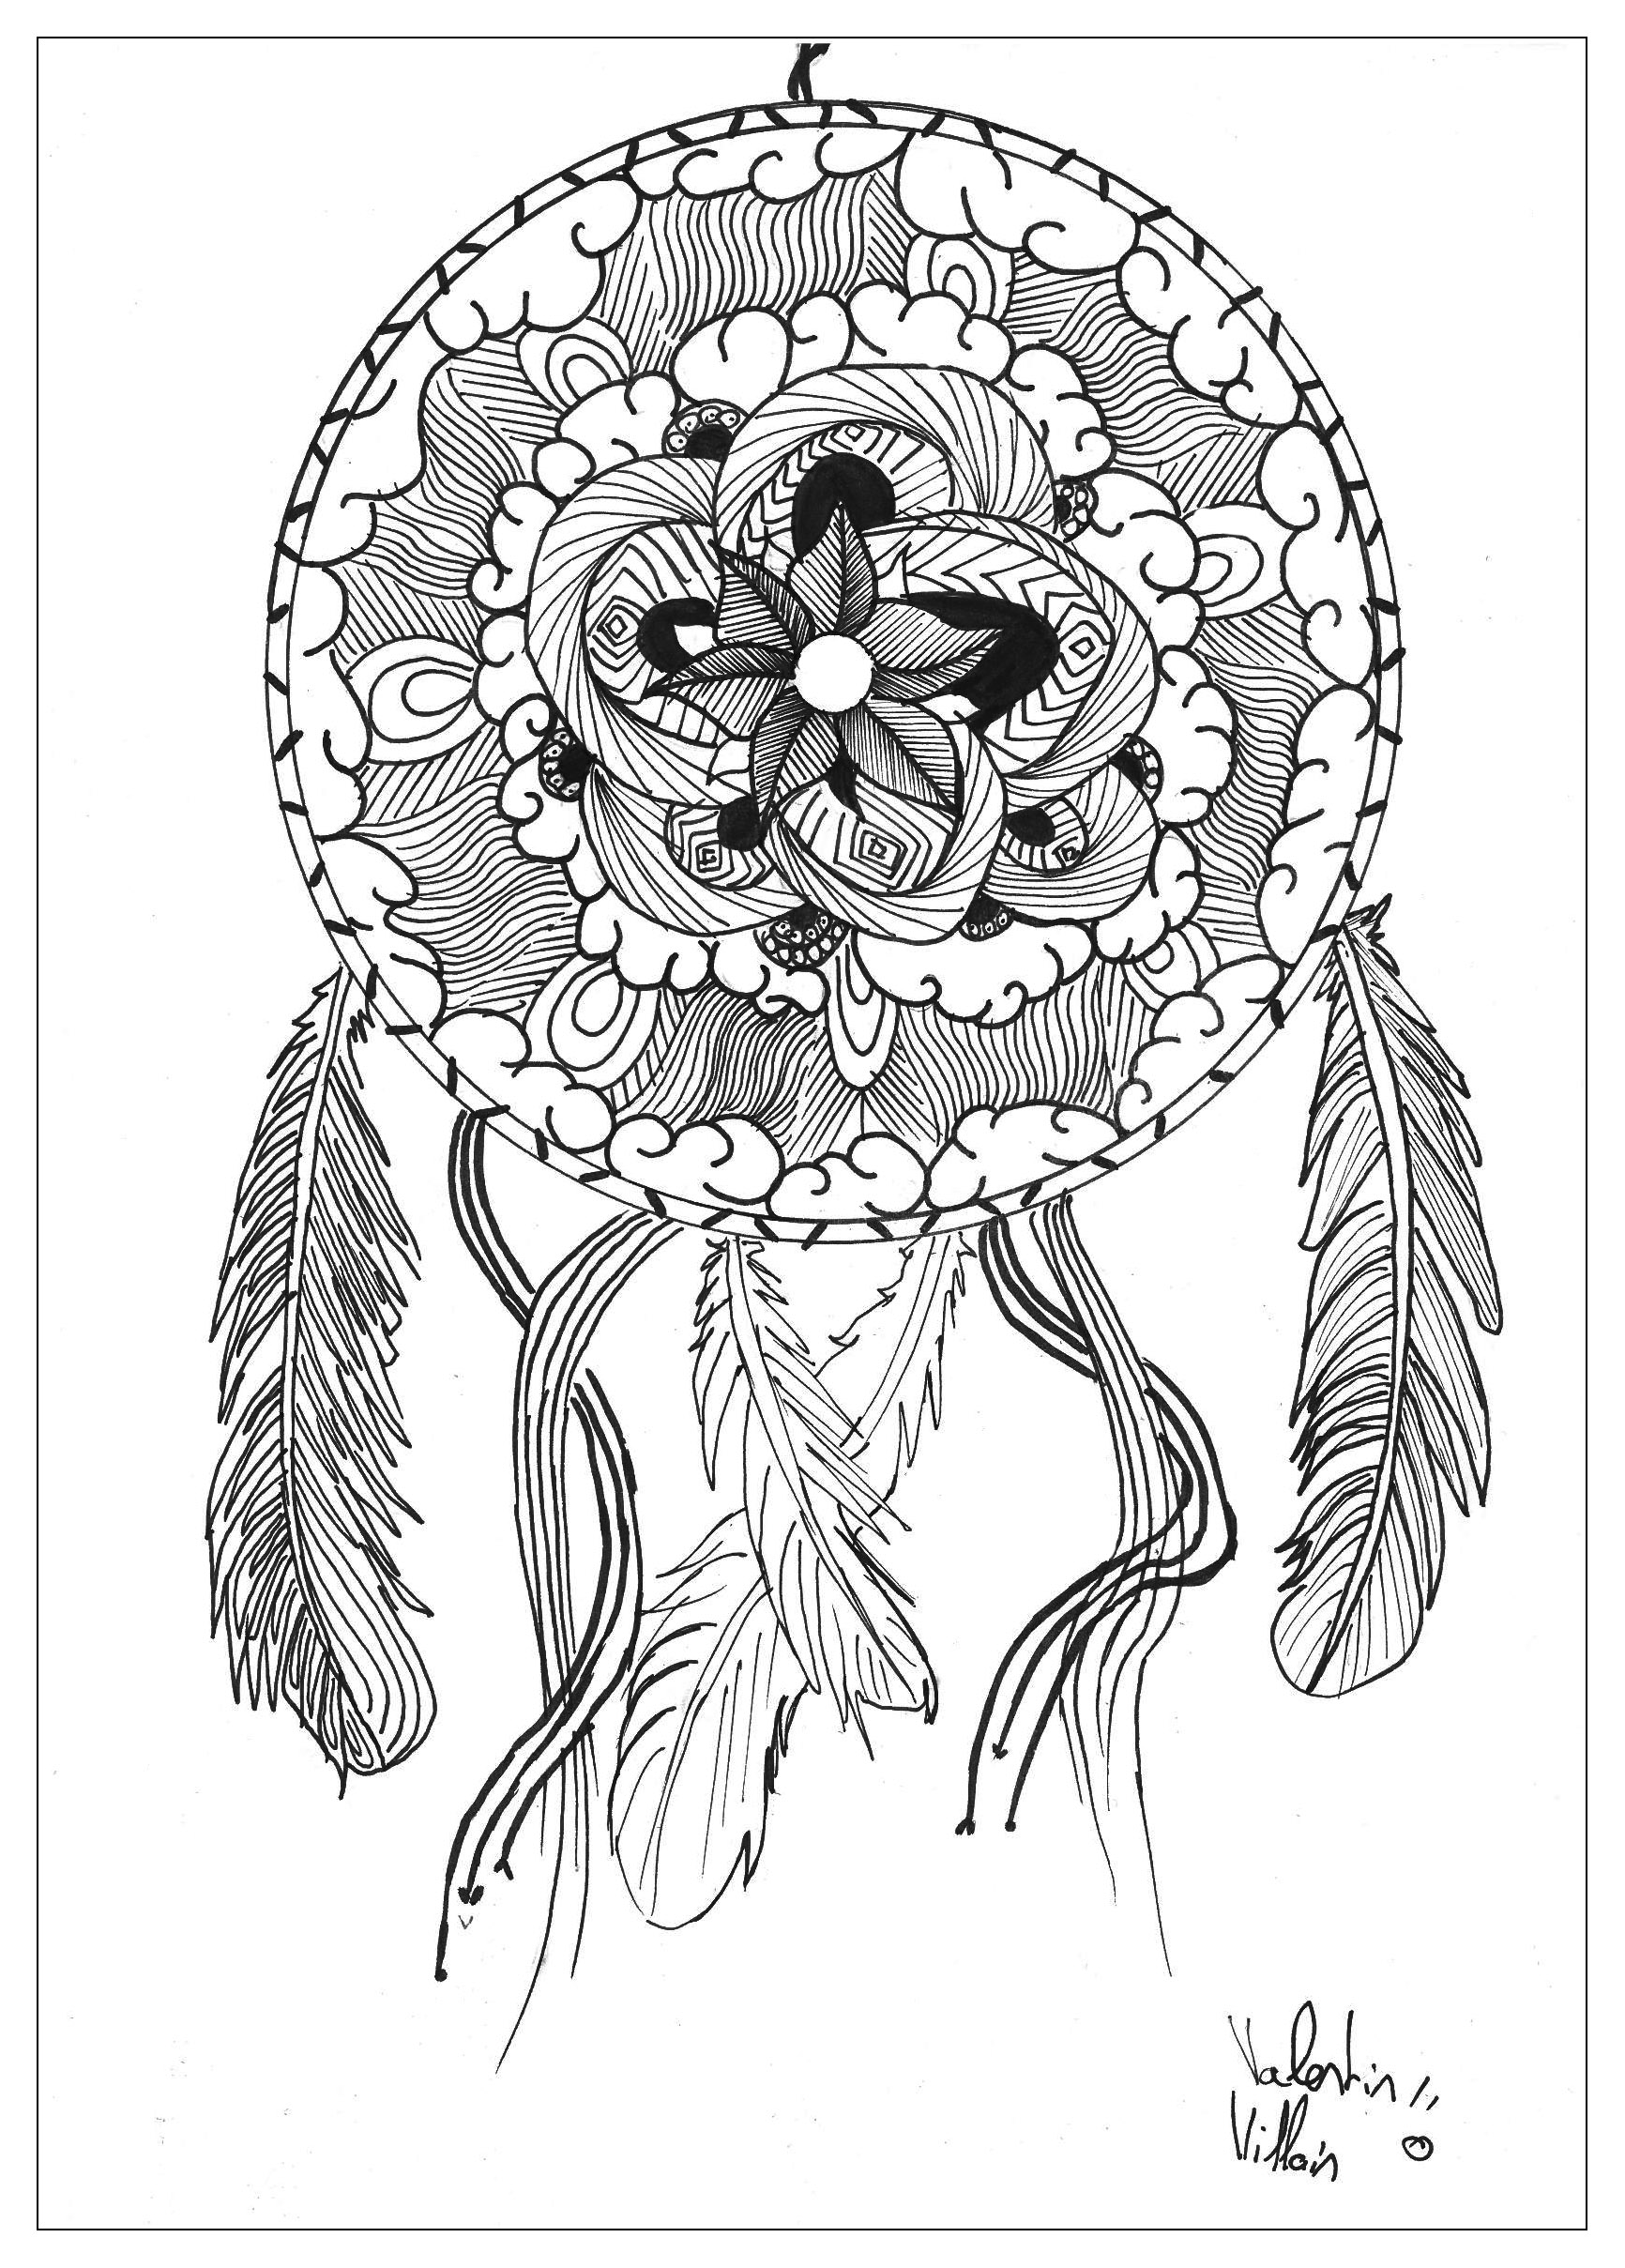 Hard mandala coloring pages for adults - Mandala To Download Dreamcatcher By Valentin Free To Print